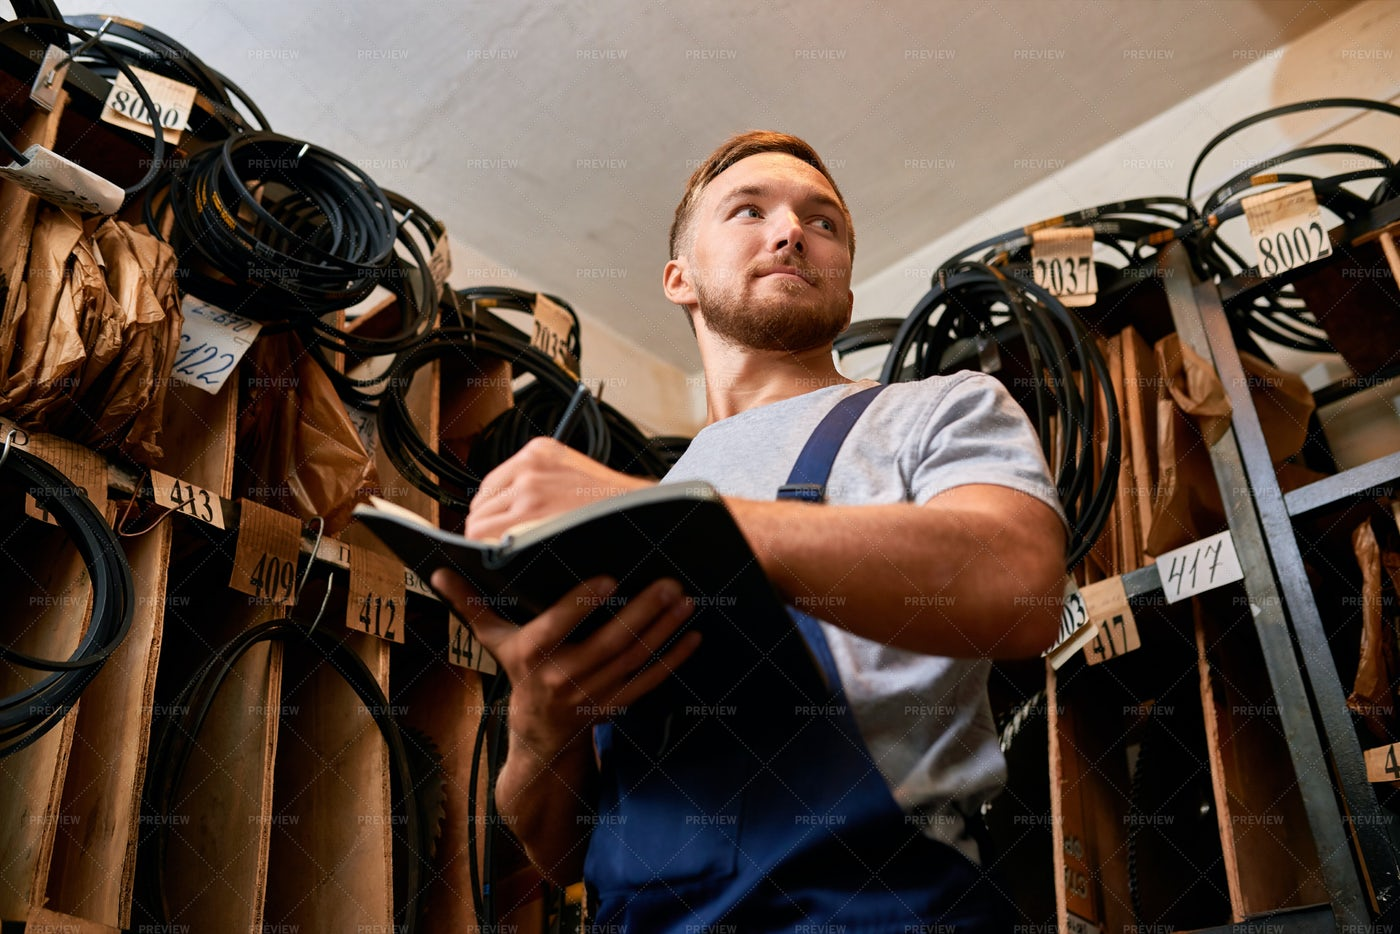 Mechanic Reviewing Stock In Storage...: Stock Photos